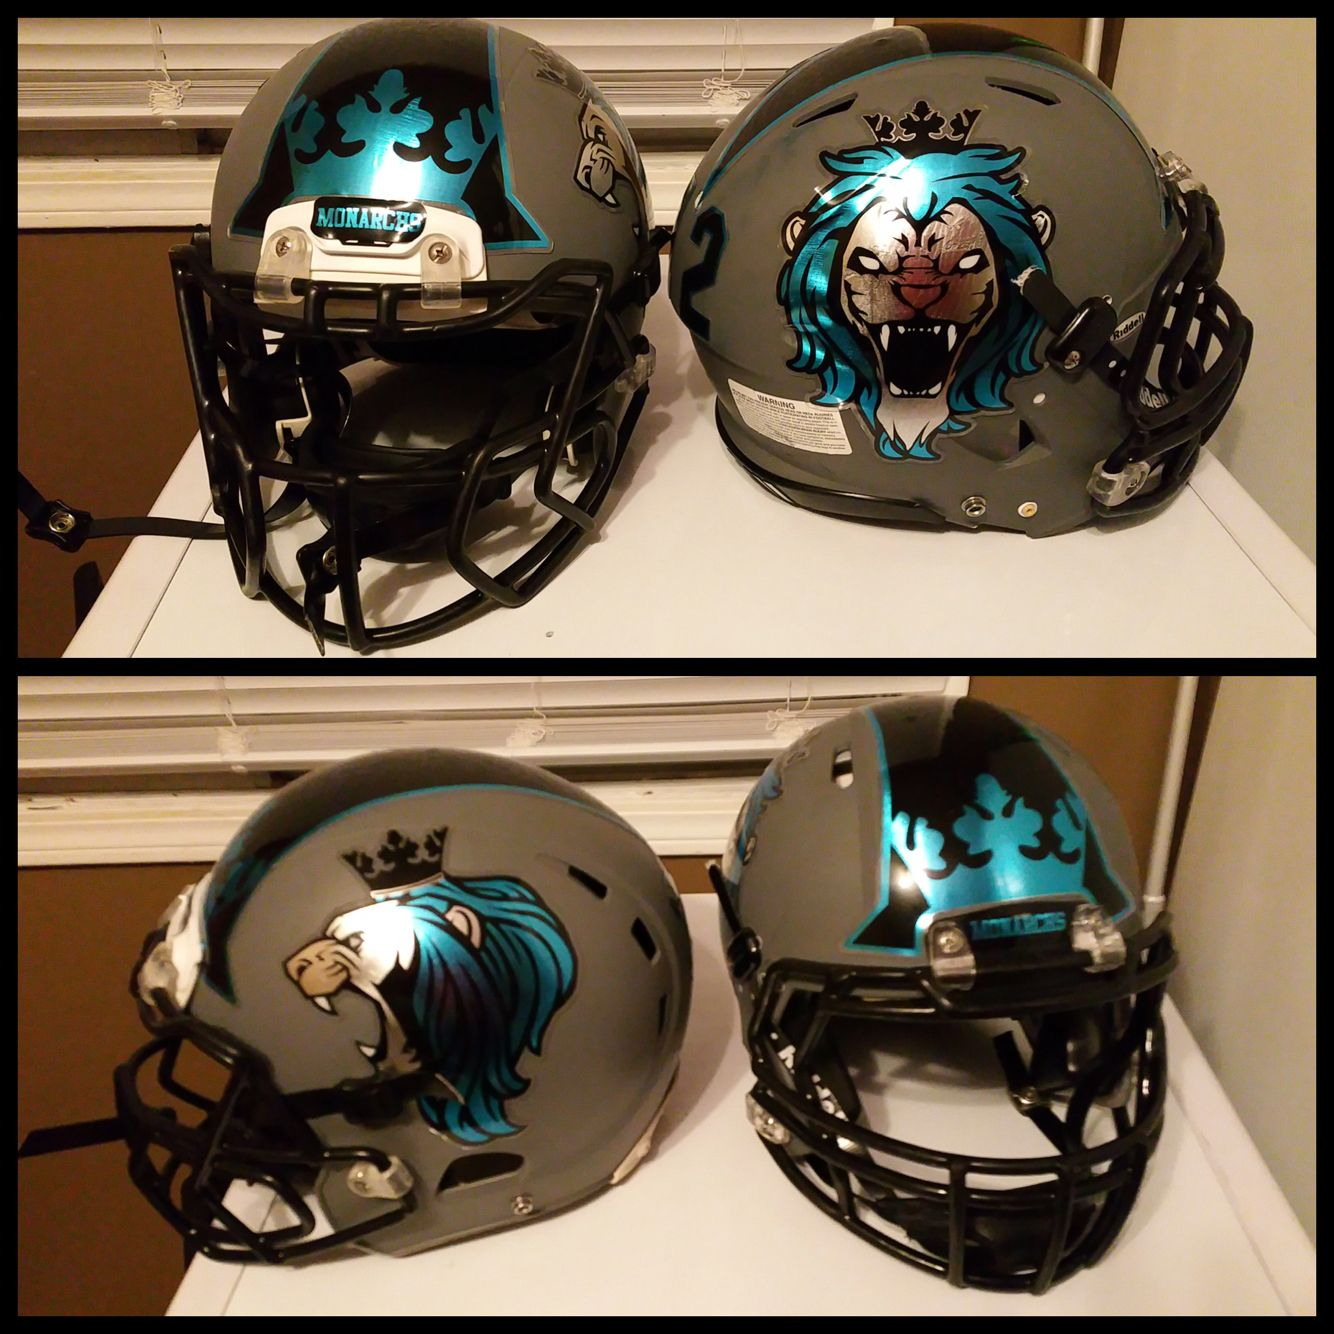 New Chrome Football Helmet Decals For Fortmacmonarchs Featuring A - Custom reflective helmet decals